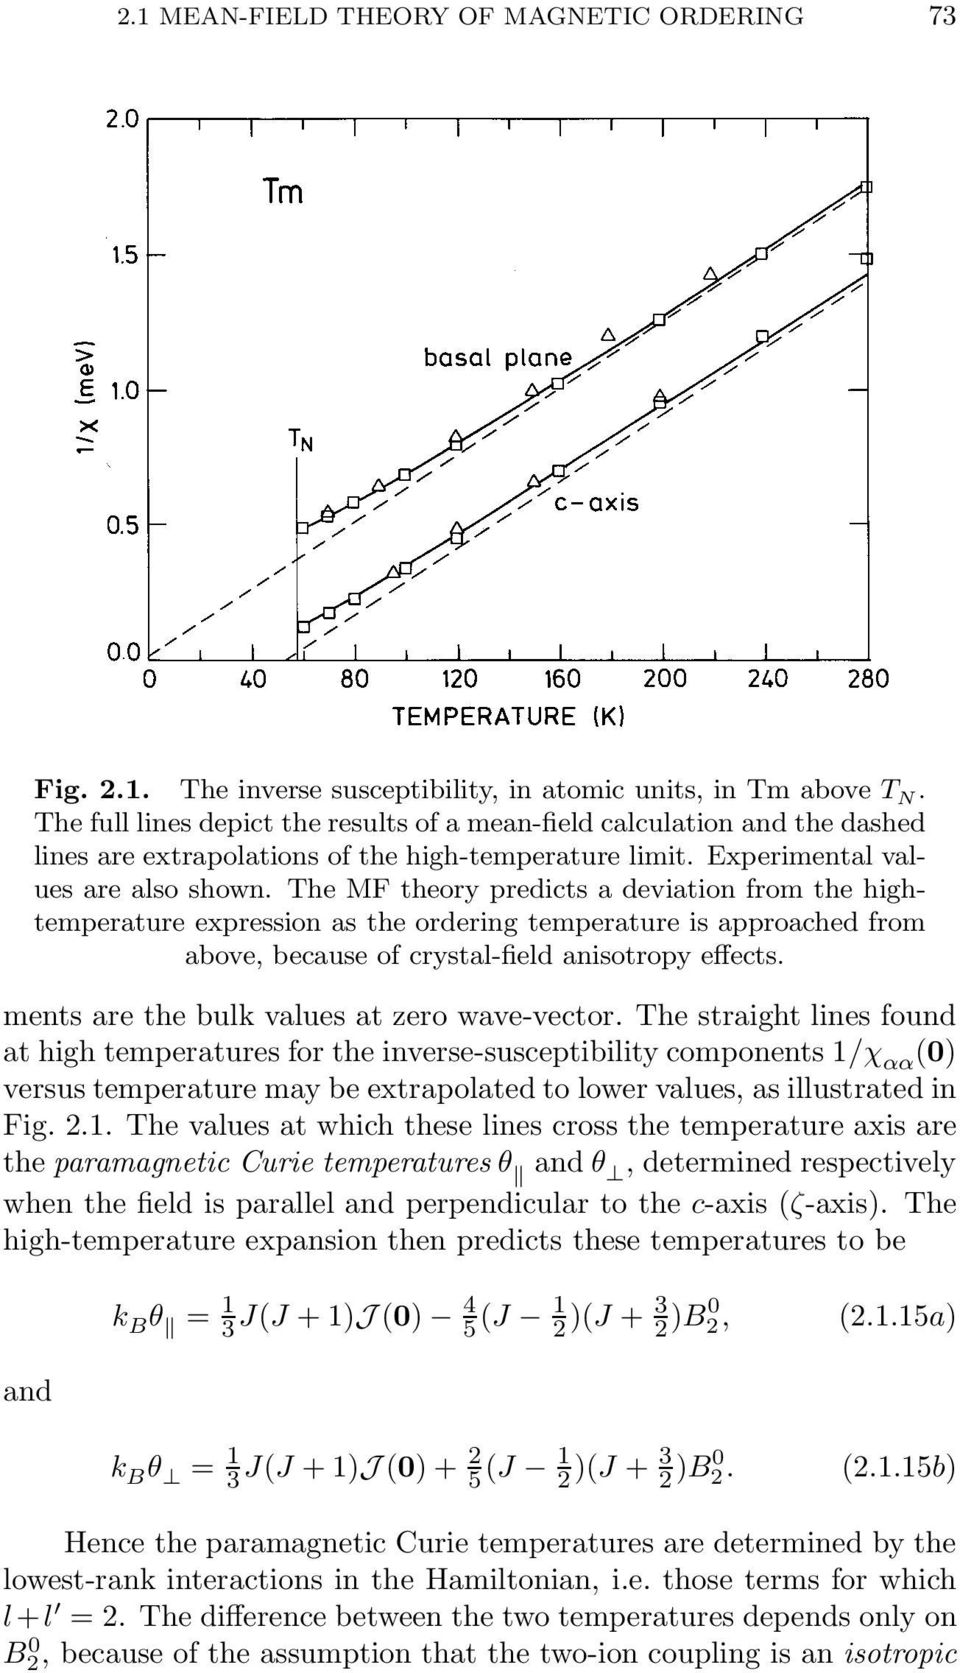 The MF theory predicts a deviation from the hightemperature expression as the ordering temperature is approached from above, because of crystal-field anisotropy effects.